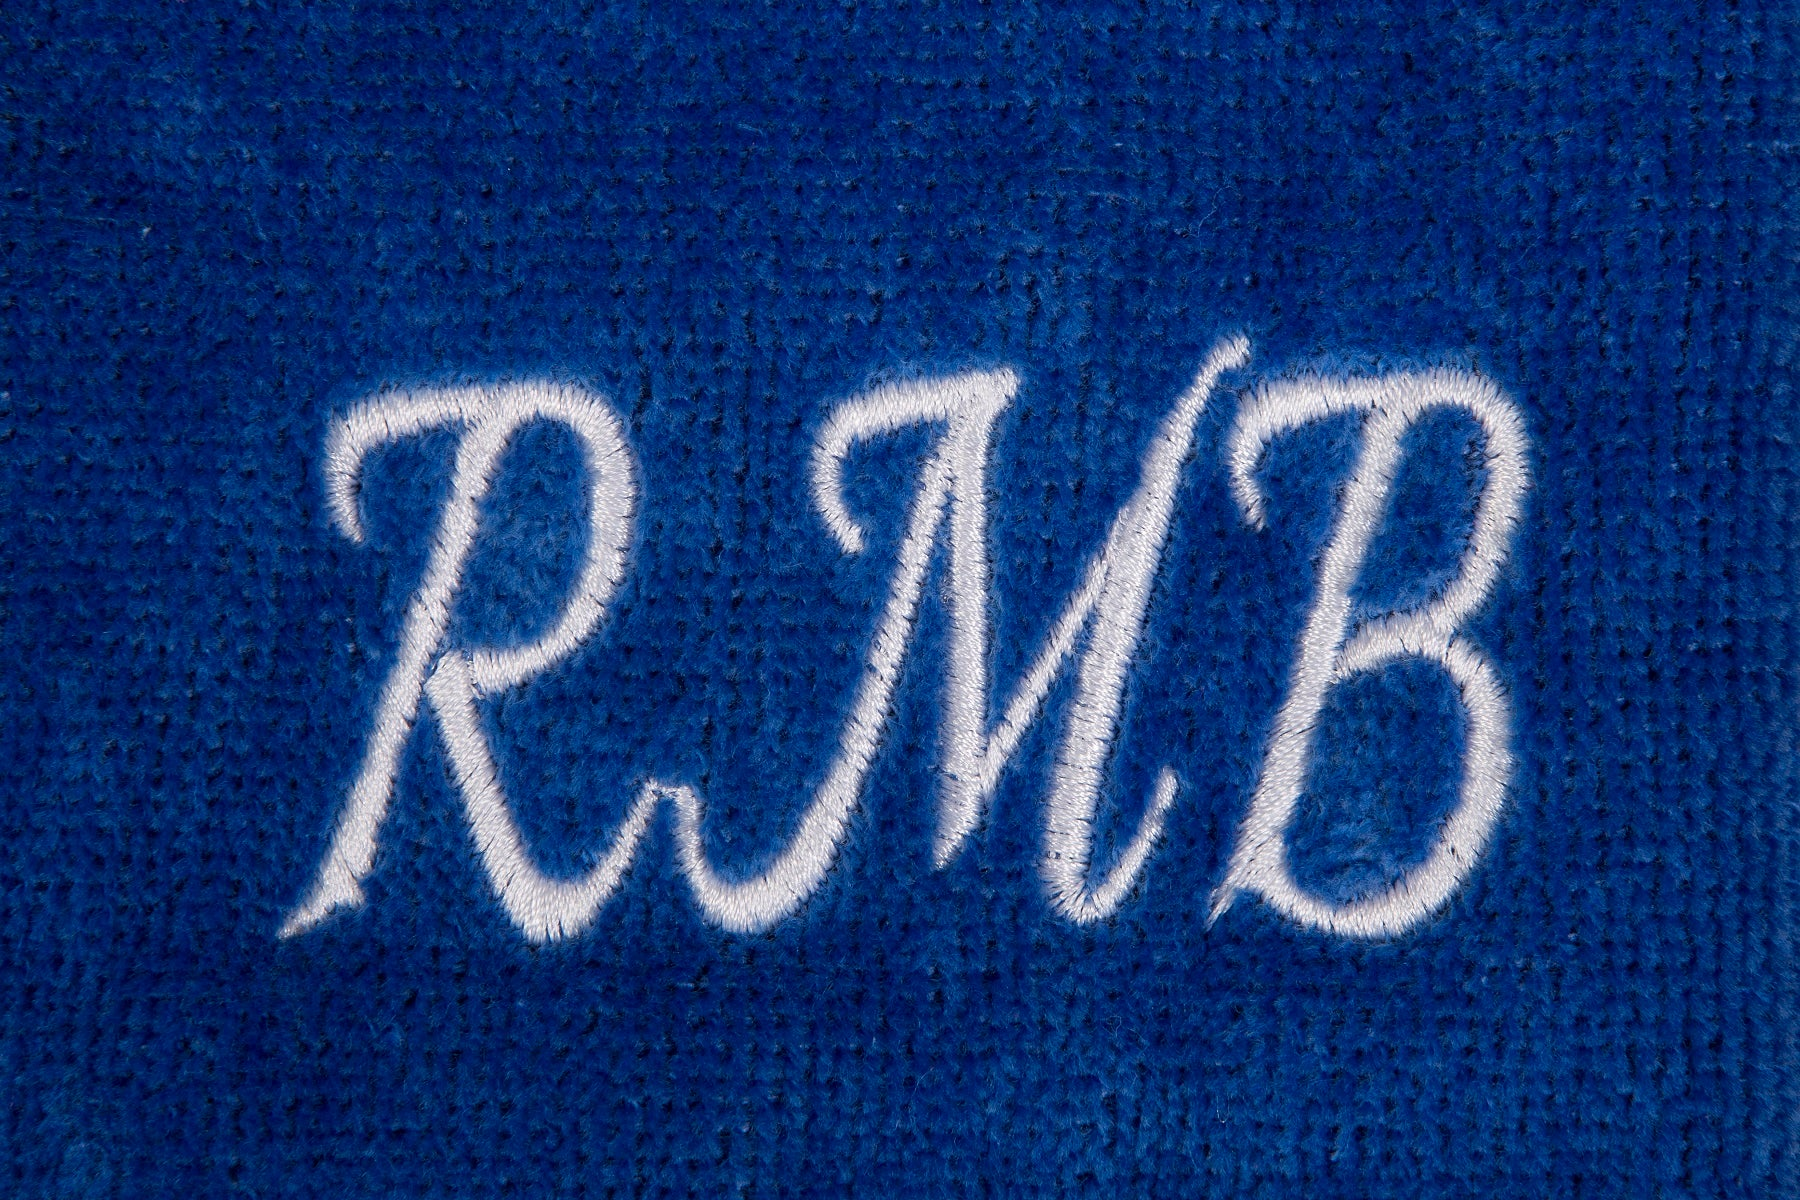 Personalised golf towel 100% royal blue cotton velour with carabiner and grommet